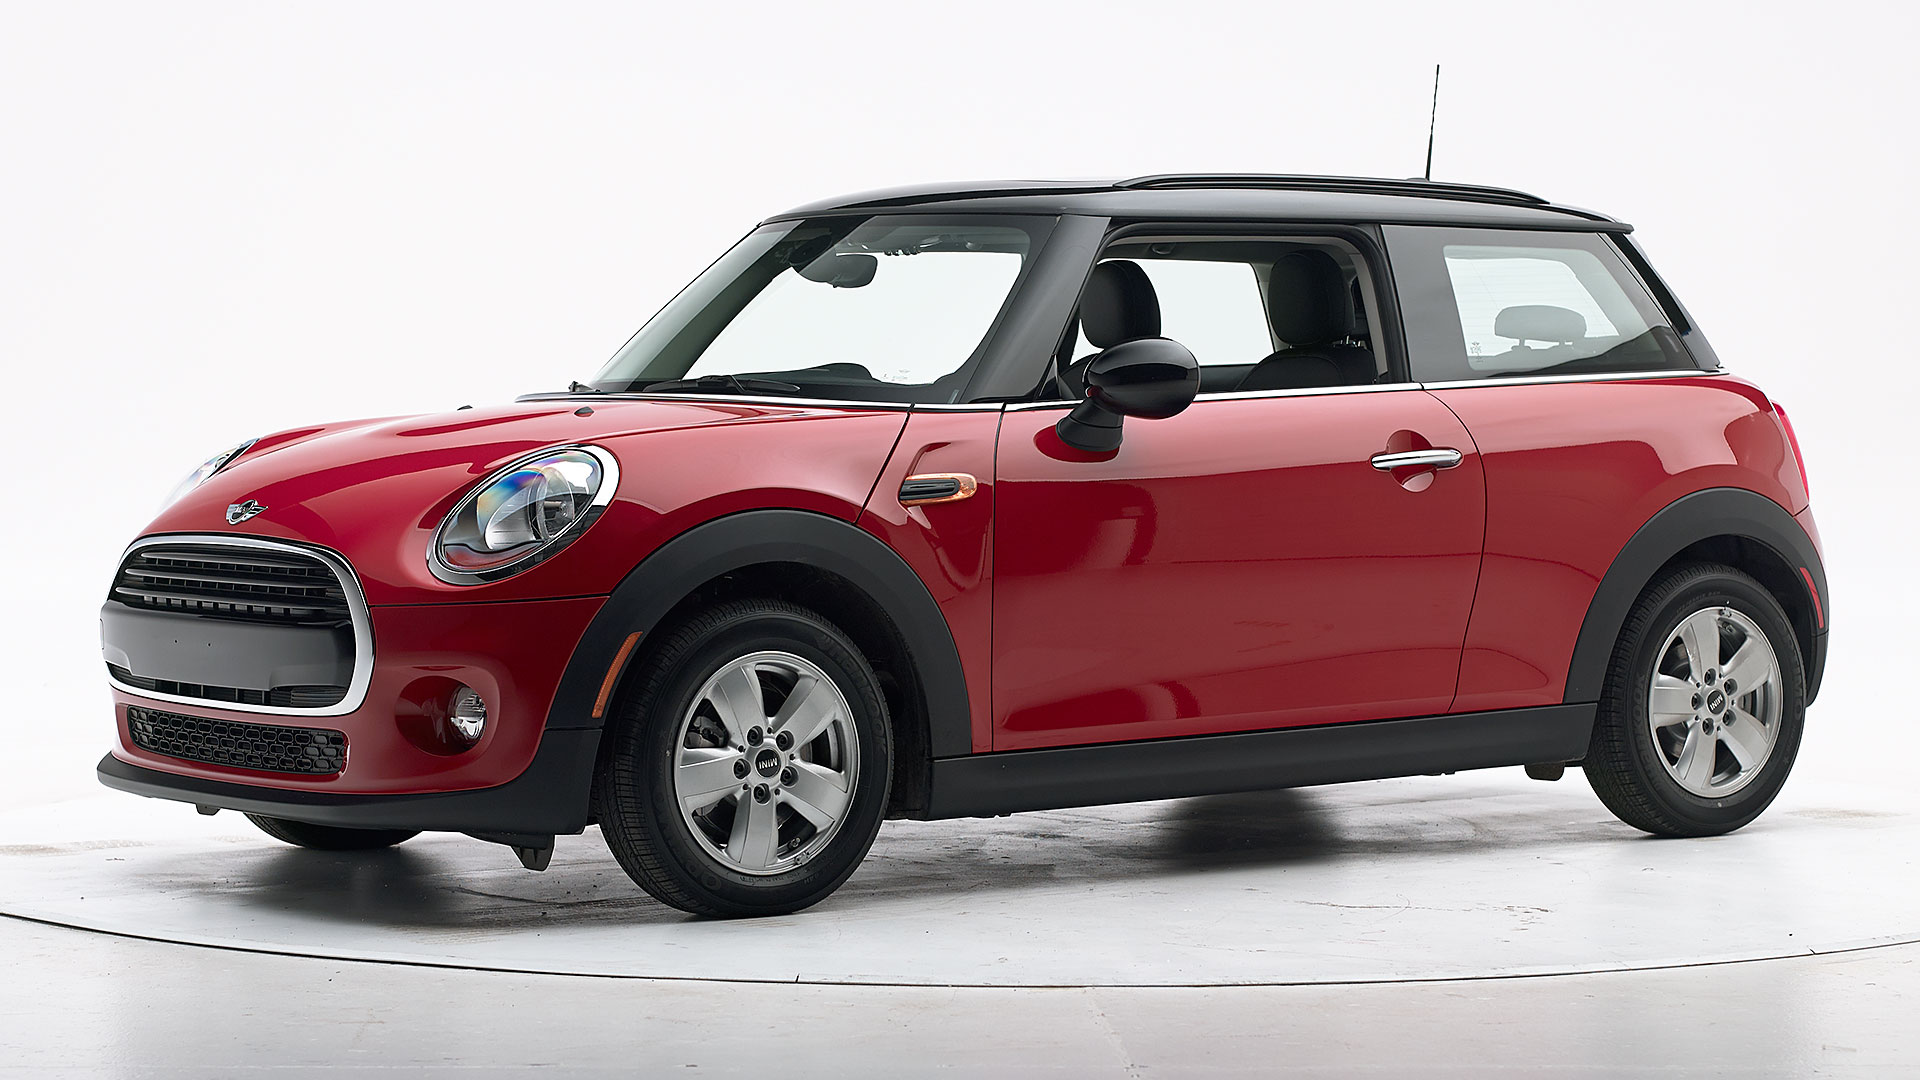 2017 Mini Cooper 2-door hatchback